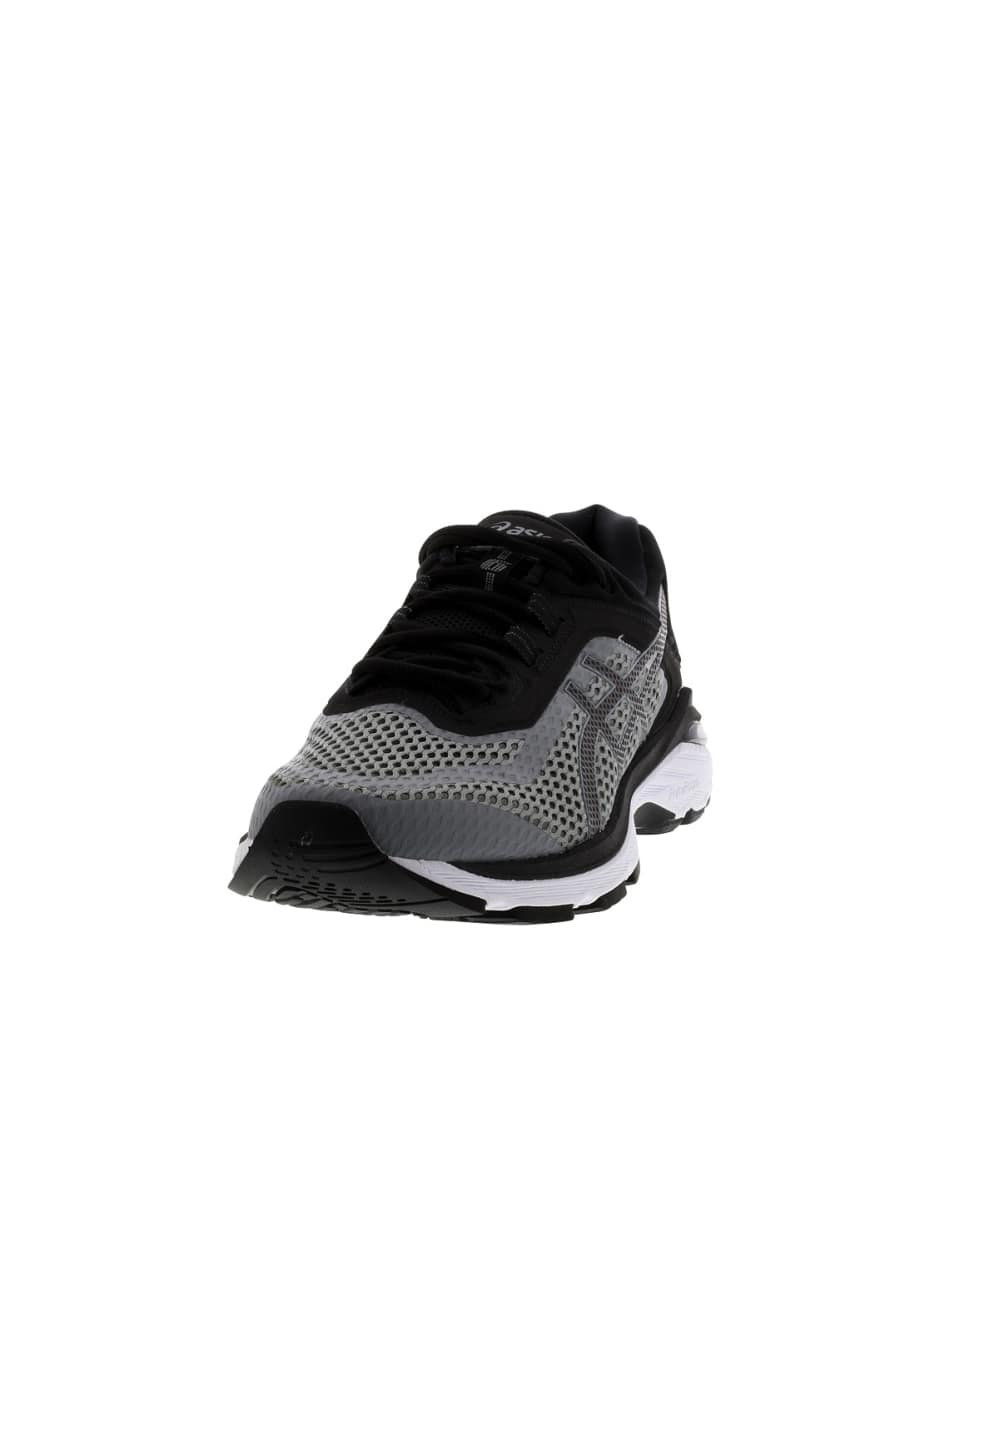 2000 Homme Gt Running Pour 6 Asics Noir Chaussures DIE2WHY9